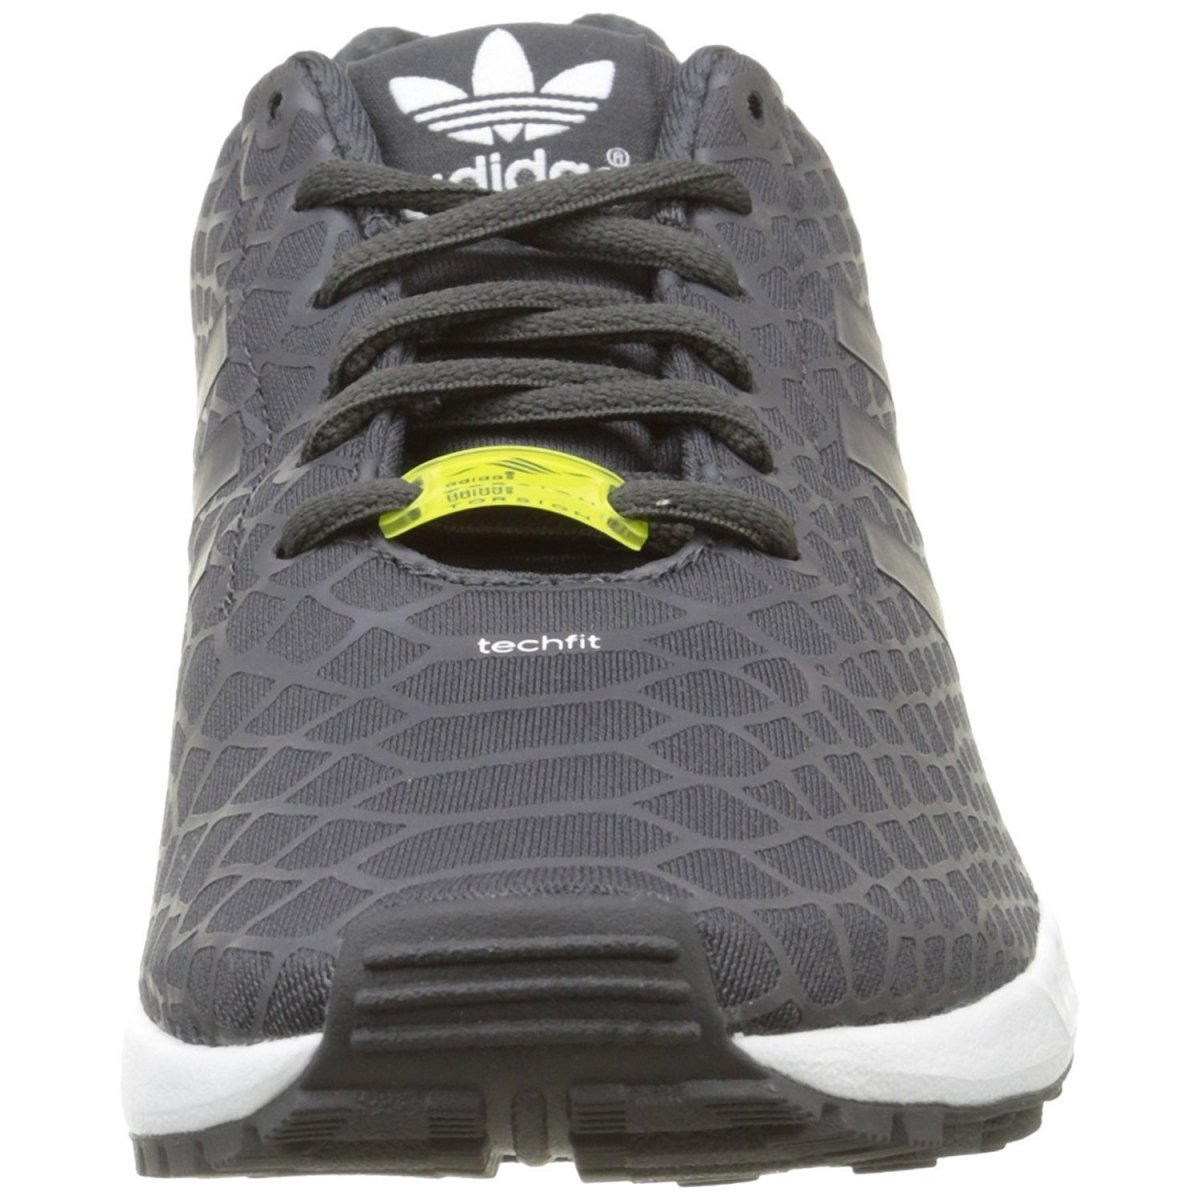 3adcec98ddfdf Details about ADIDAS ORIGINALS ZX FLUX TECHFIT Men Snaekers Athletic Shoes  S75488